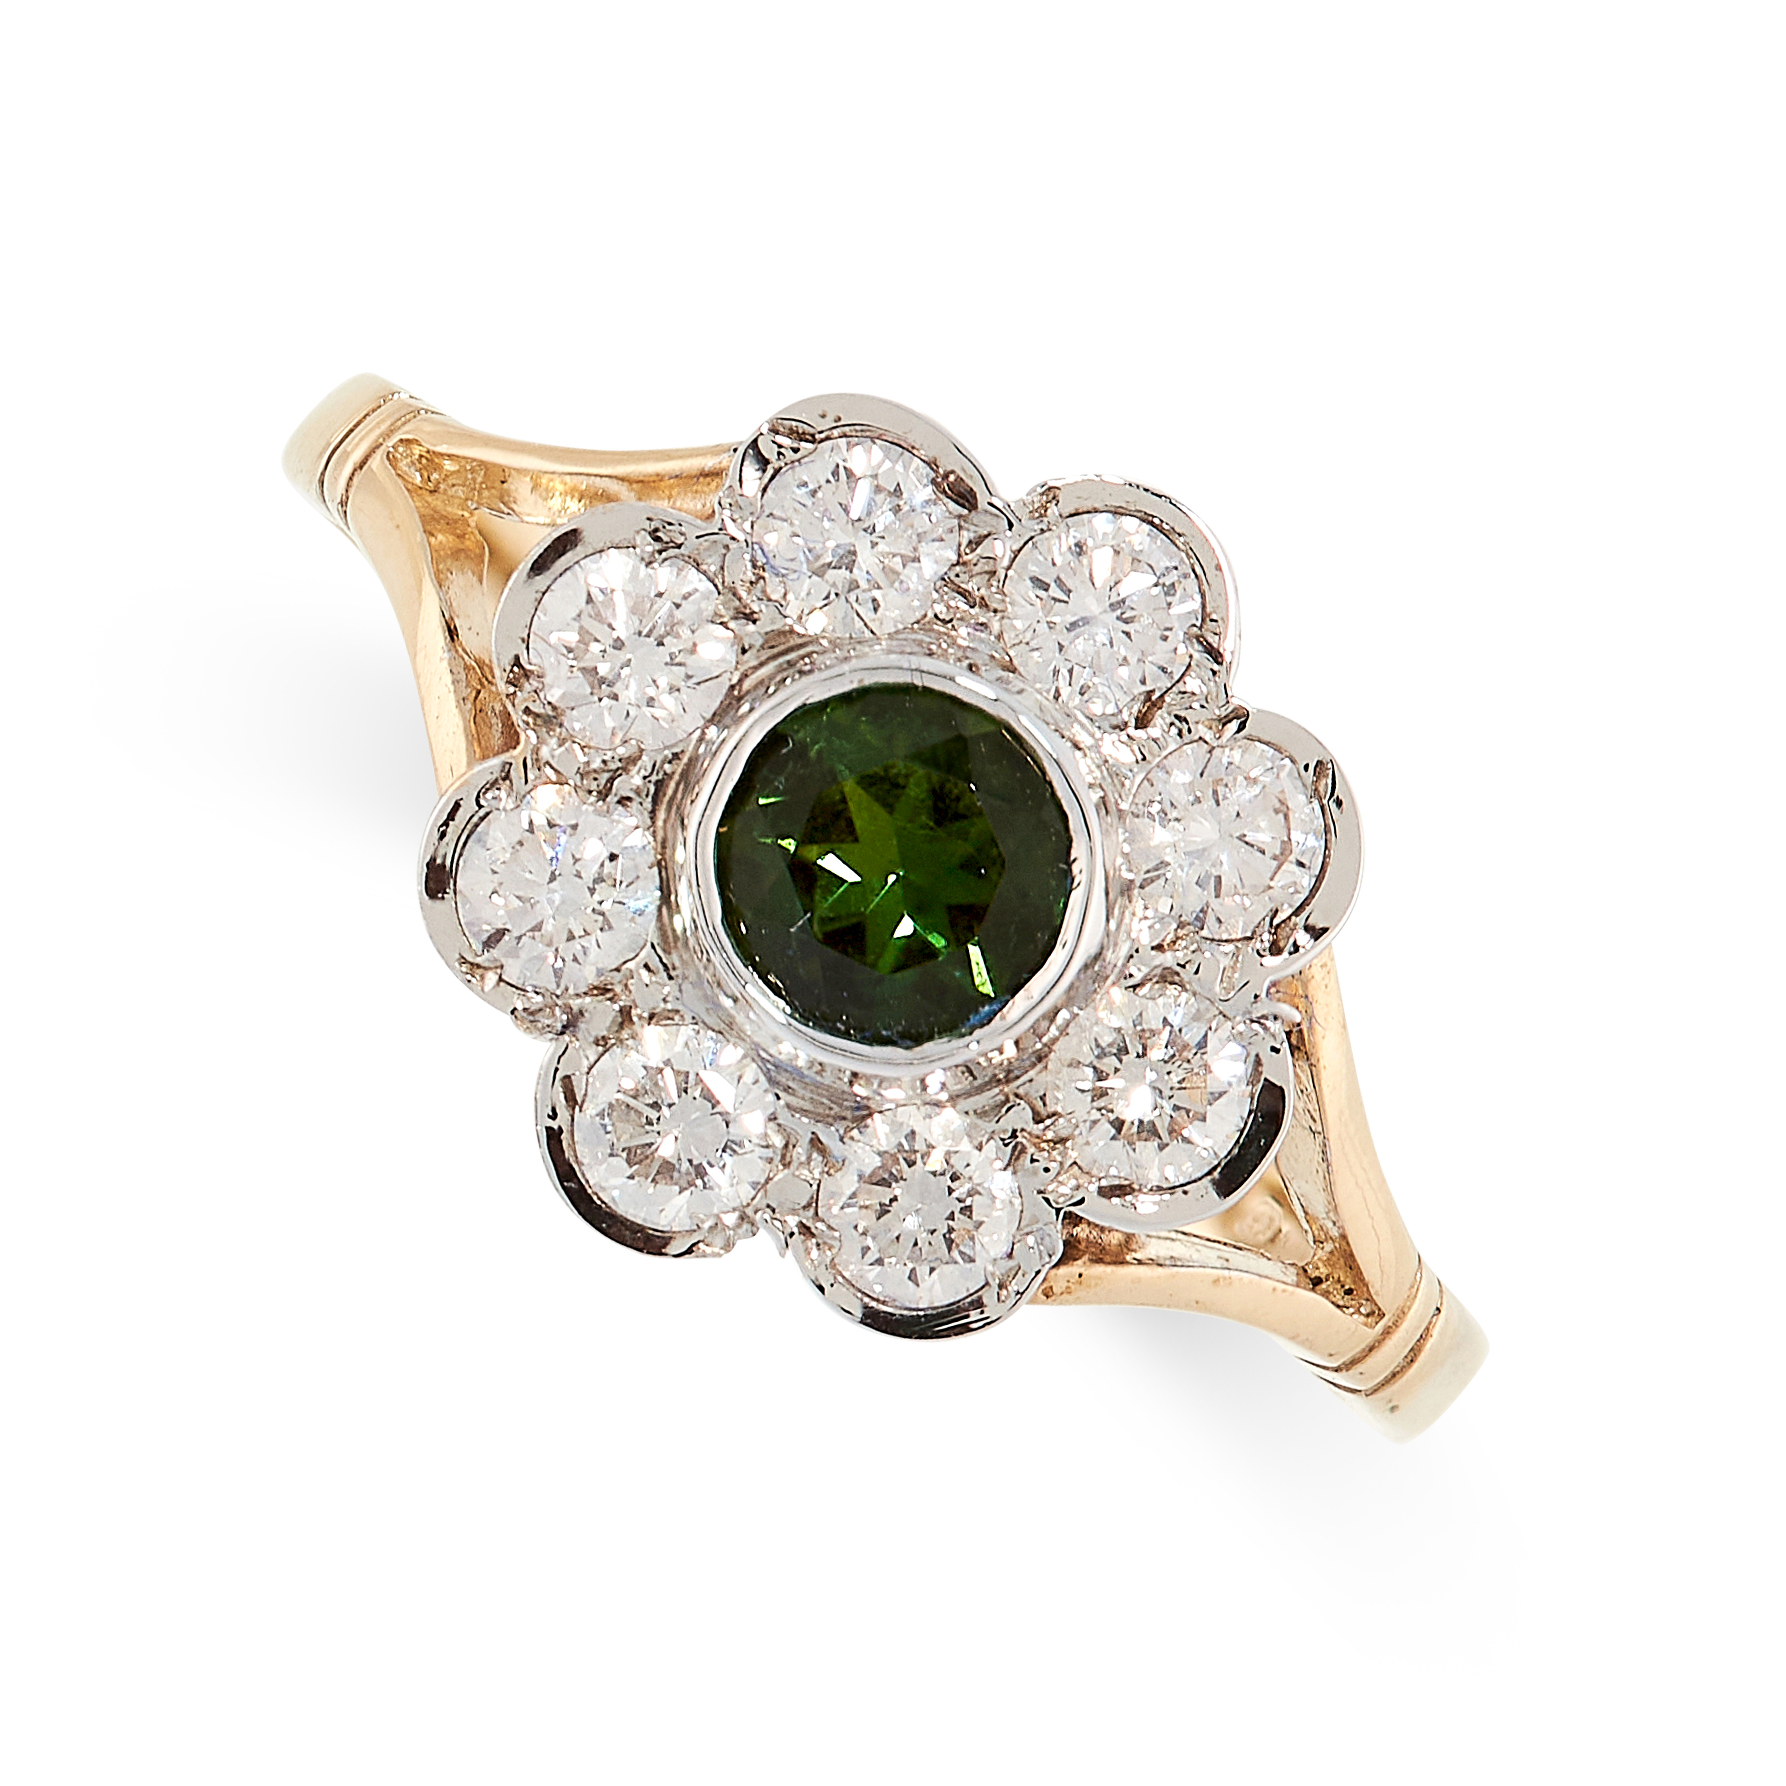 GREEN TOURMALINE AND DIAMOND RING in yellow gold, in cluster form, set with a round cut tourmaline